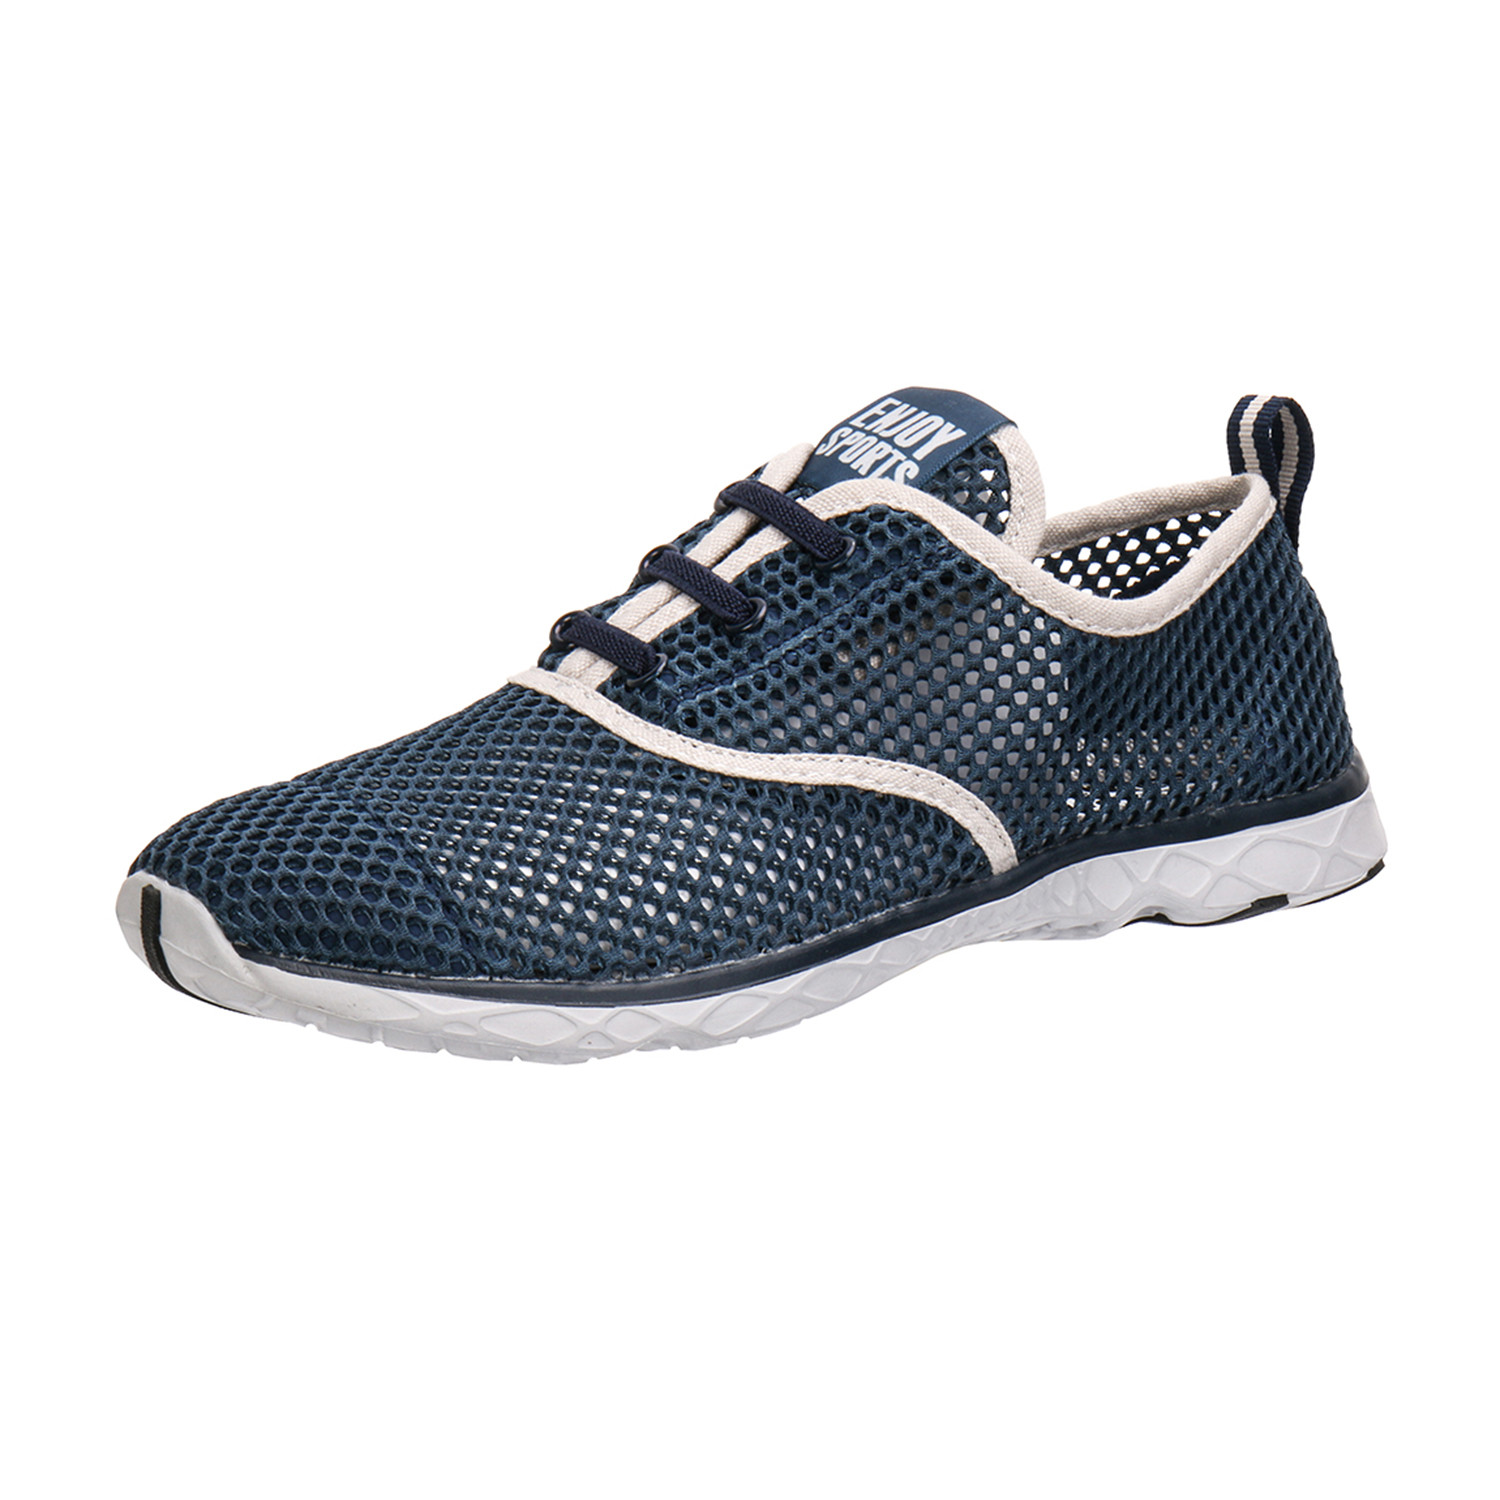 MEN'S XDRAIN CLASSIC 1.0 WATER SHOES